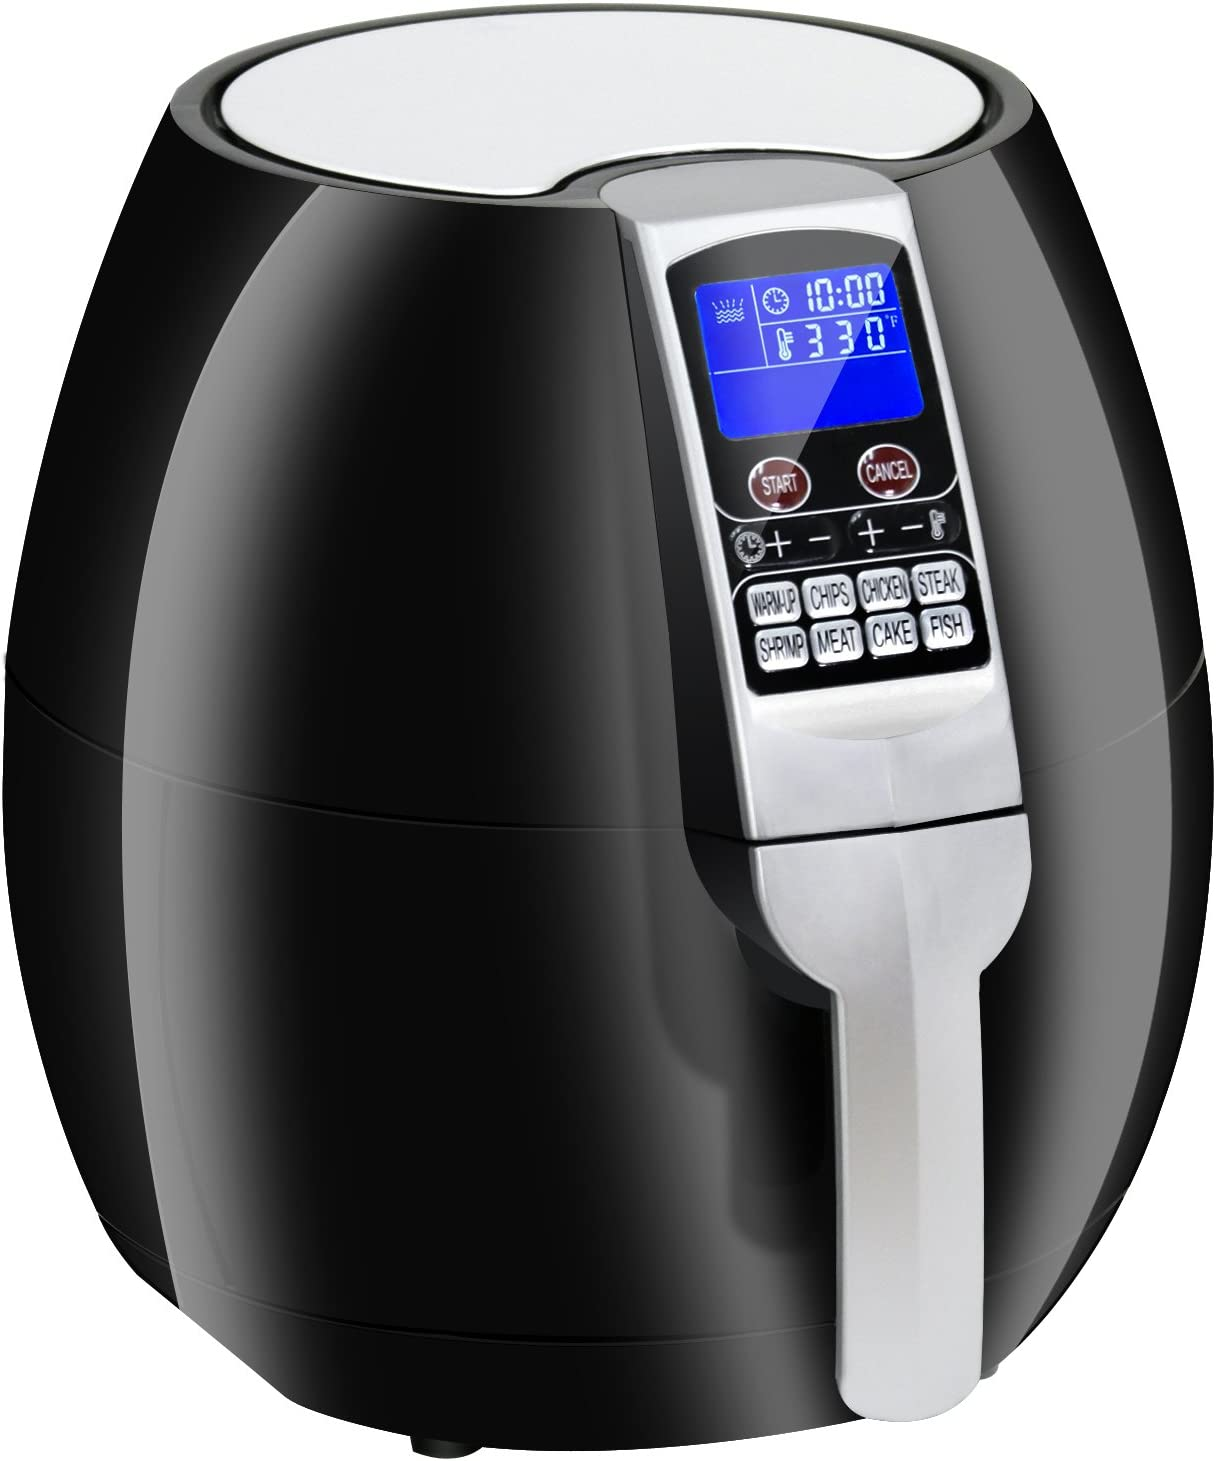 ZENY 8-in-1 3.7 Quart Programmable Electric Air Fryer, 1500W LCD Display Screen Control Kitchen Cooker w 8 Cooking Settings, Auto Shut off Timer Black